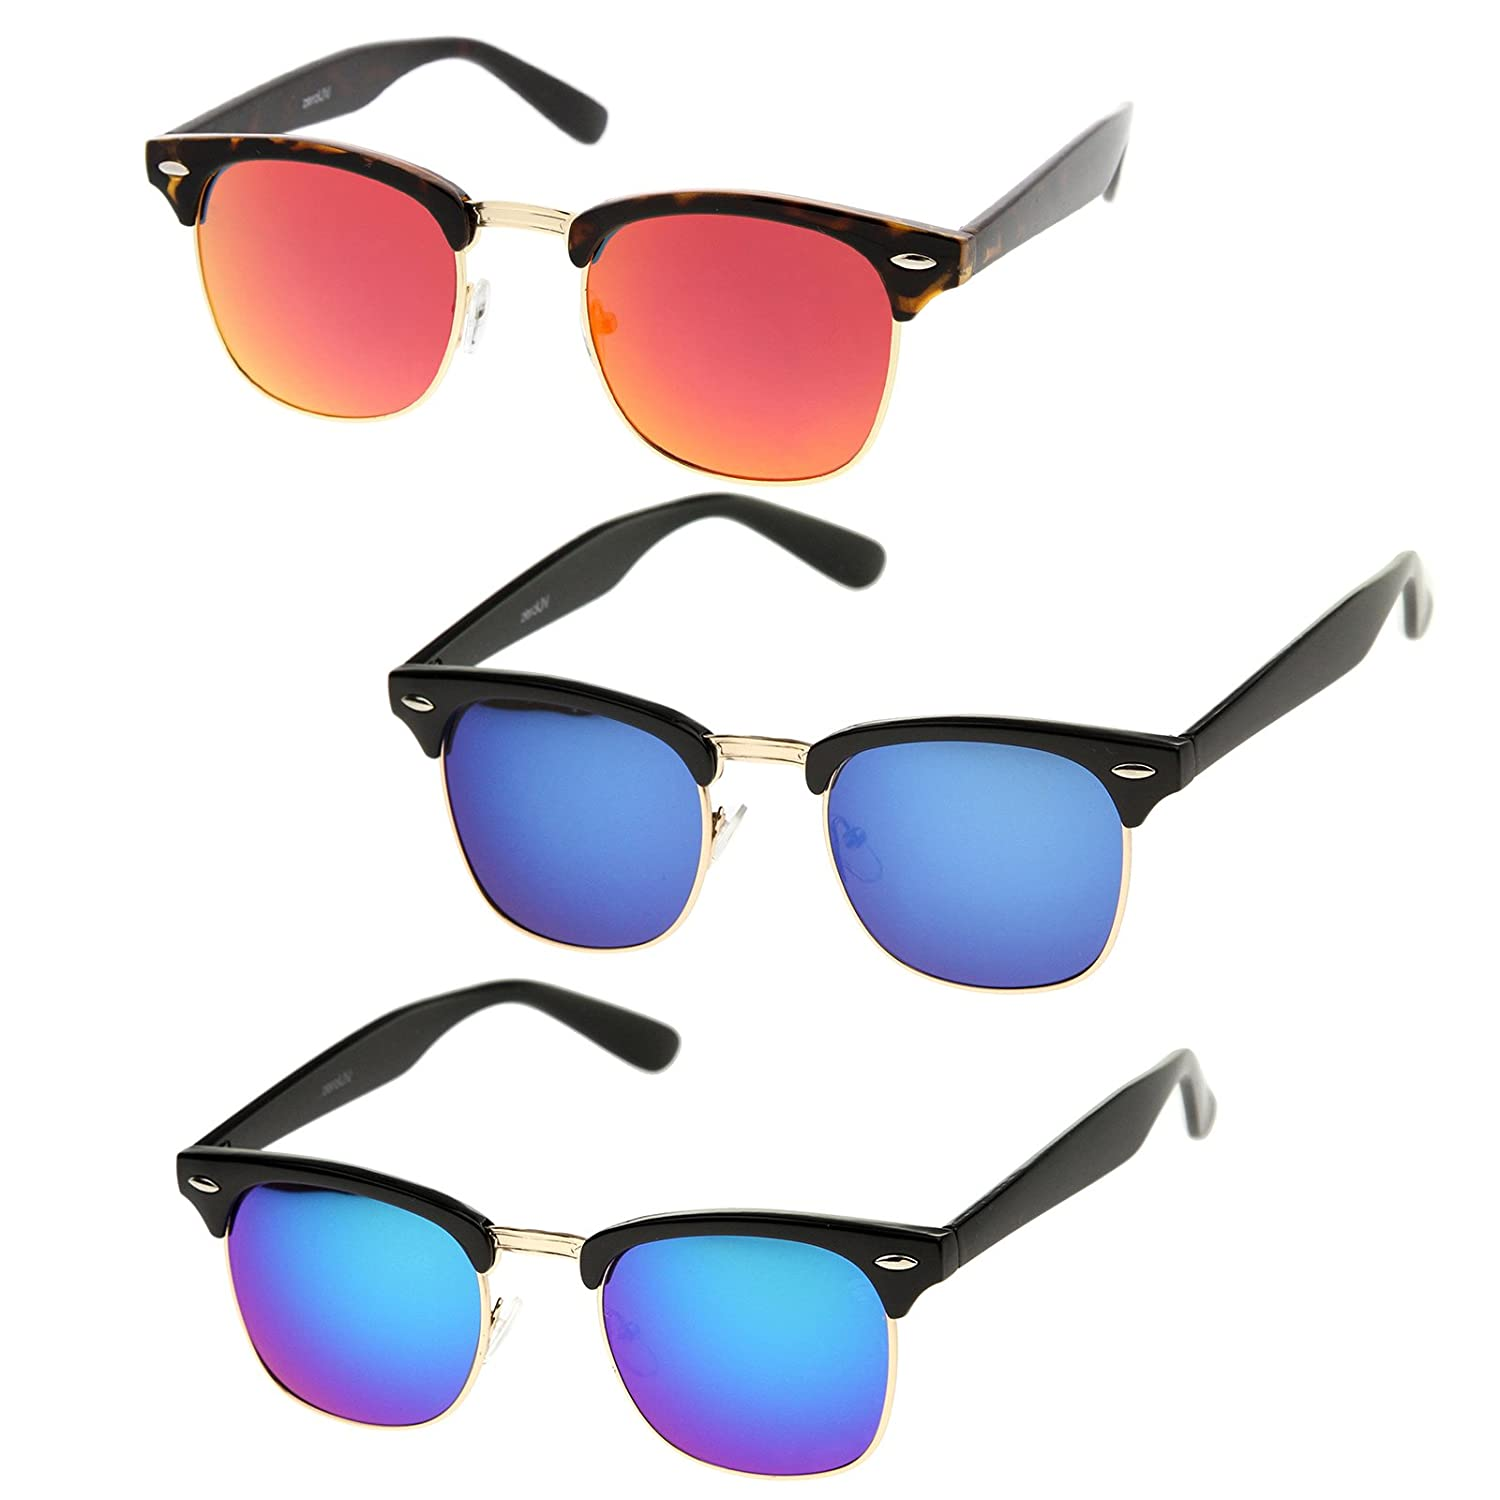 a5b6f0d8fe Amazon.com  zeroUV - Half Frame Semi Rimless Sunglasses for Men Women with  Colored Mirror Lens 50mm (3-Pack